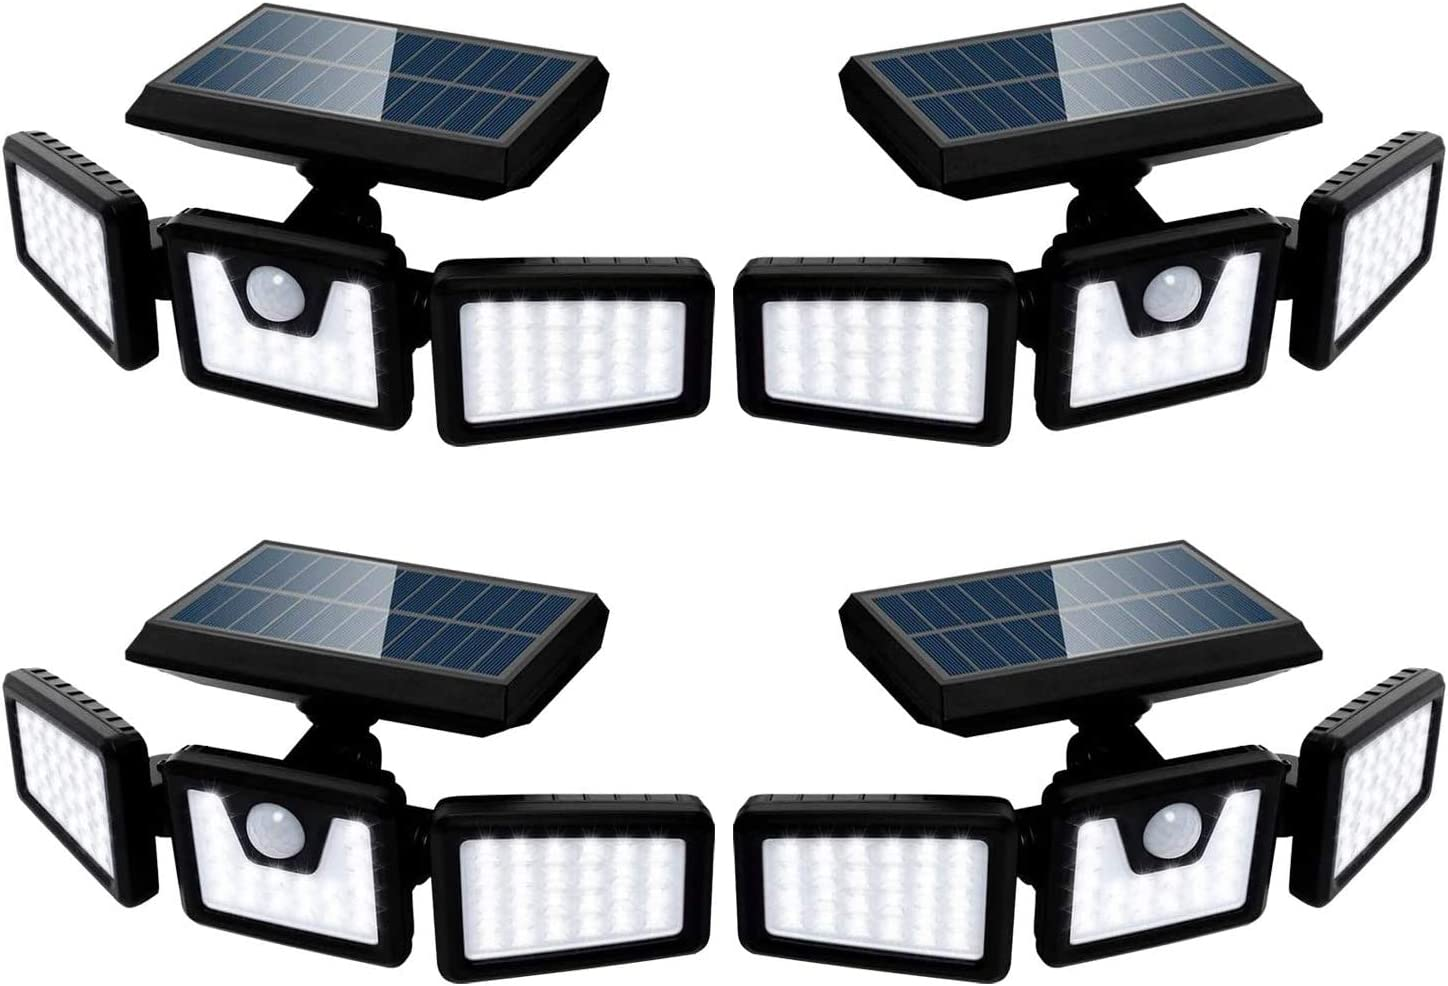 Solar Lights Outdoor with Motion Sensor, 3 Heads Security Lights Solar Powered, 70 LED Flood Light Motion Detected Spotlight for Garage Yard Entryways Patio, IP65 Waterproof 4 Pack